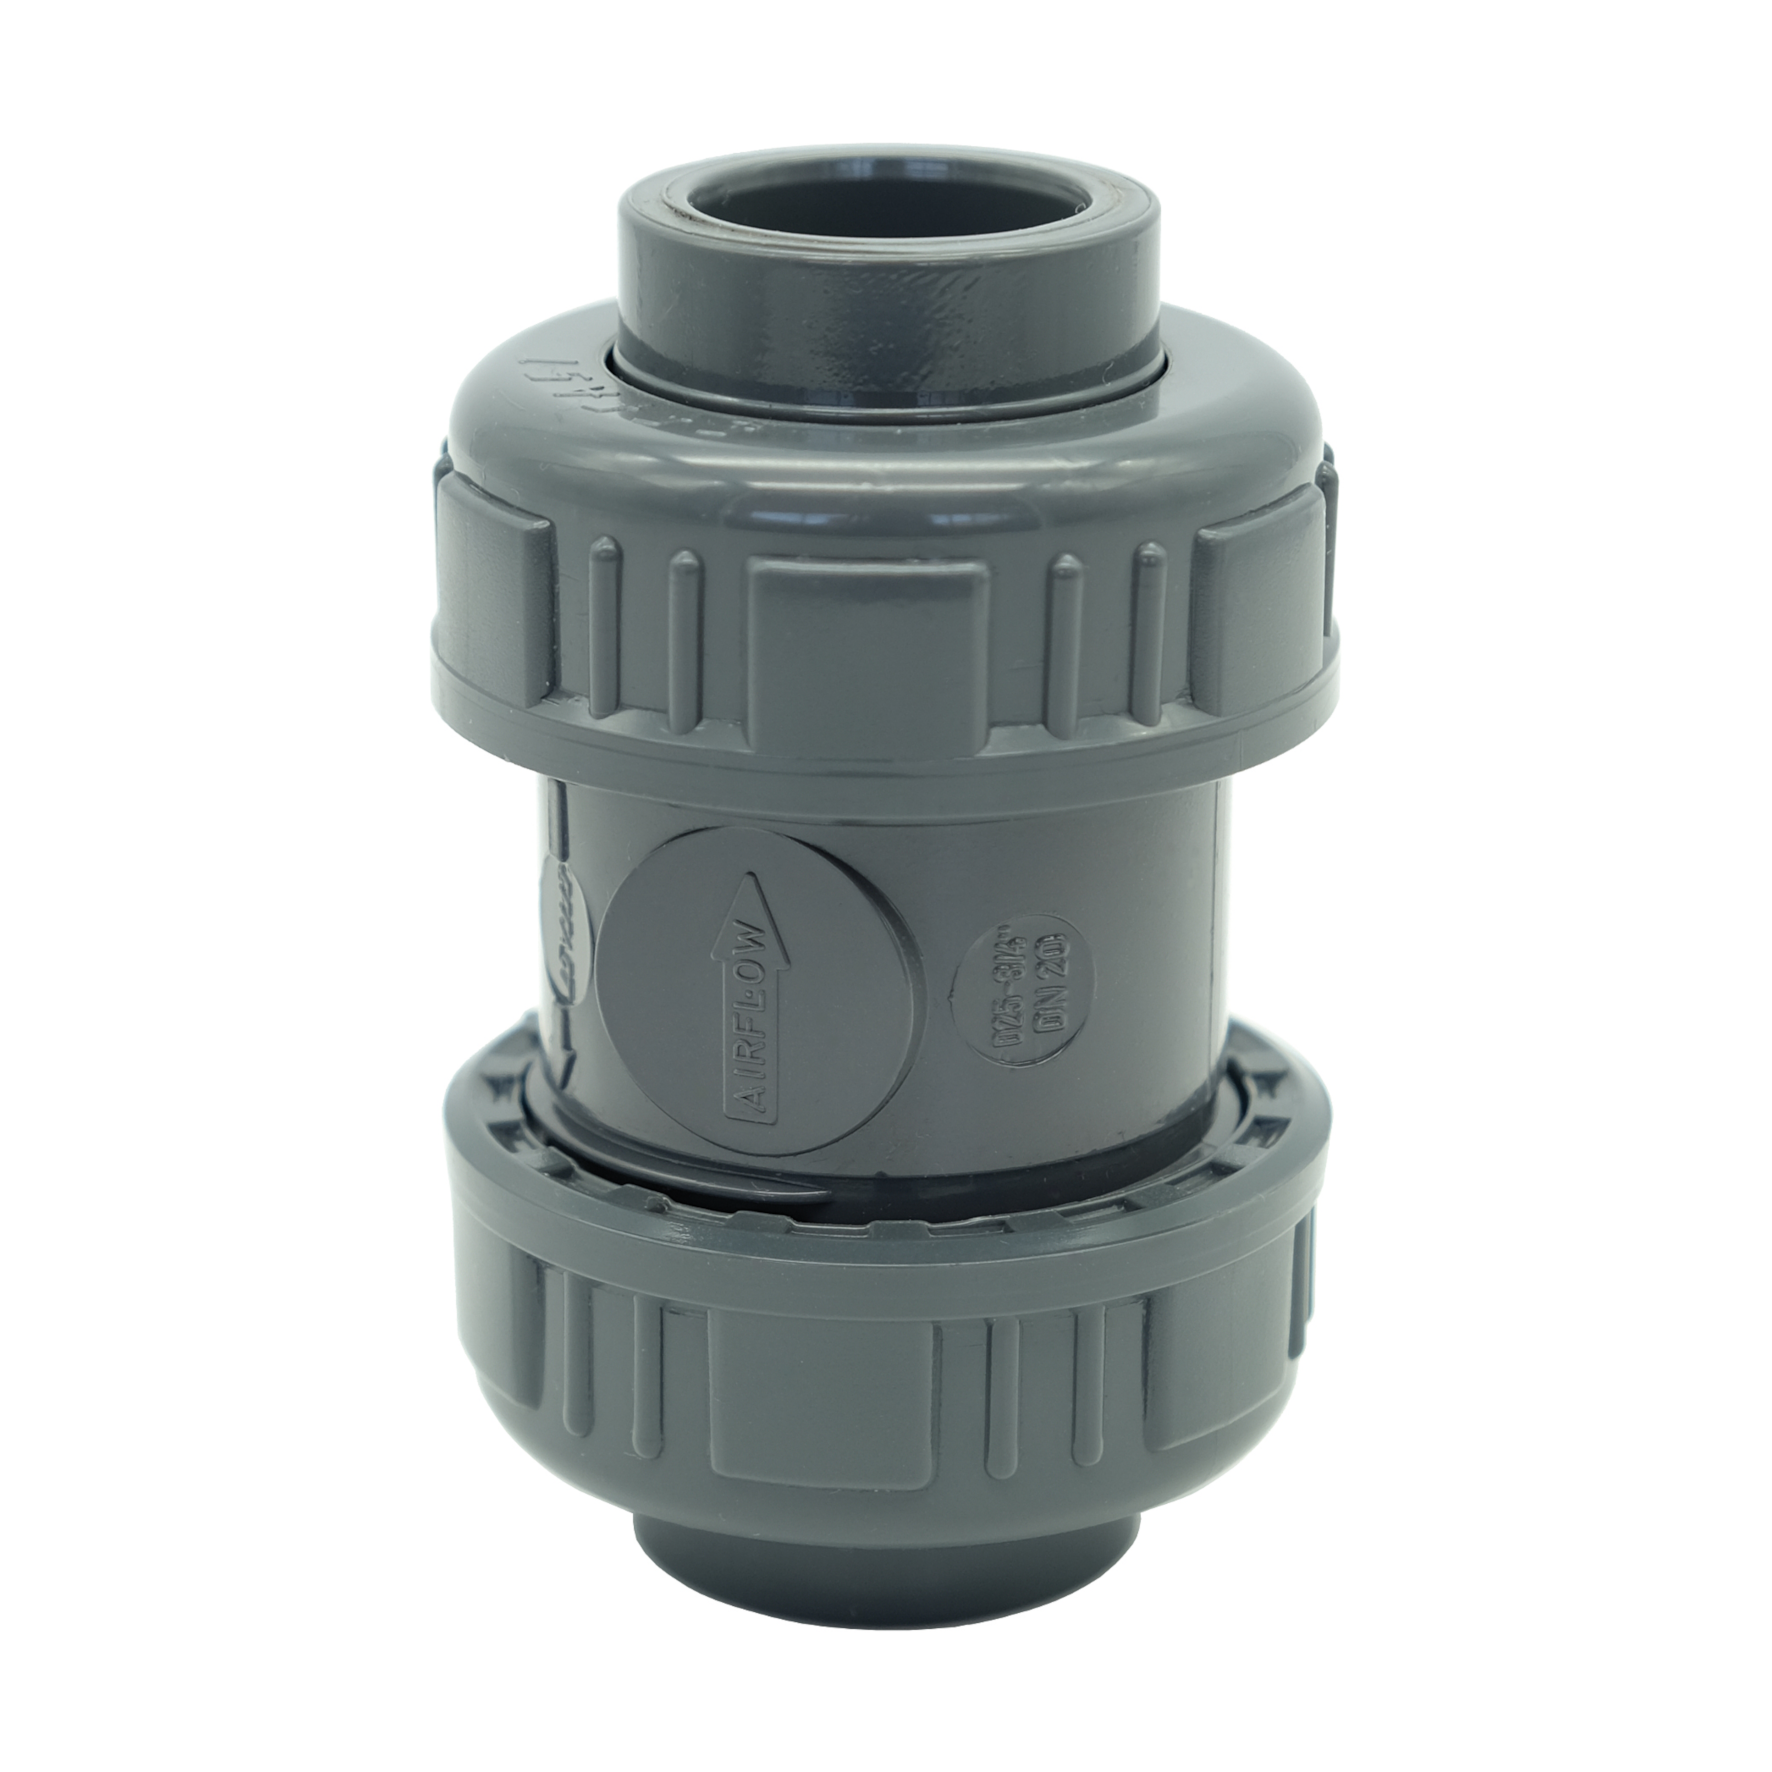 PVC-U air release valve AV - EFFAST - 100% Made in Italy